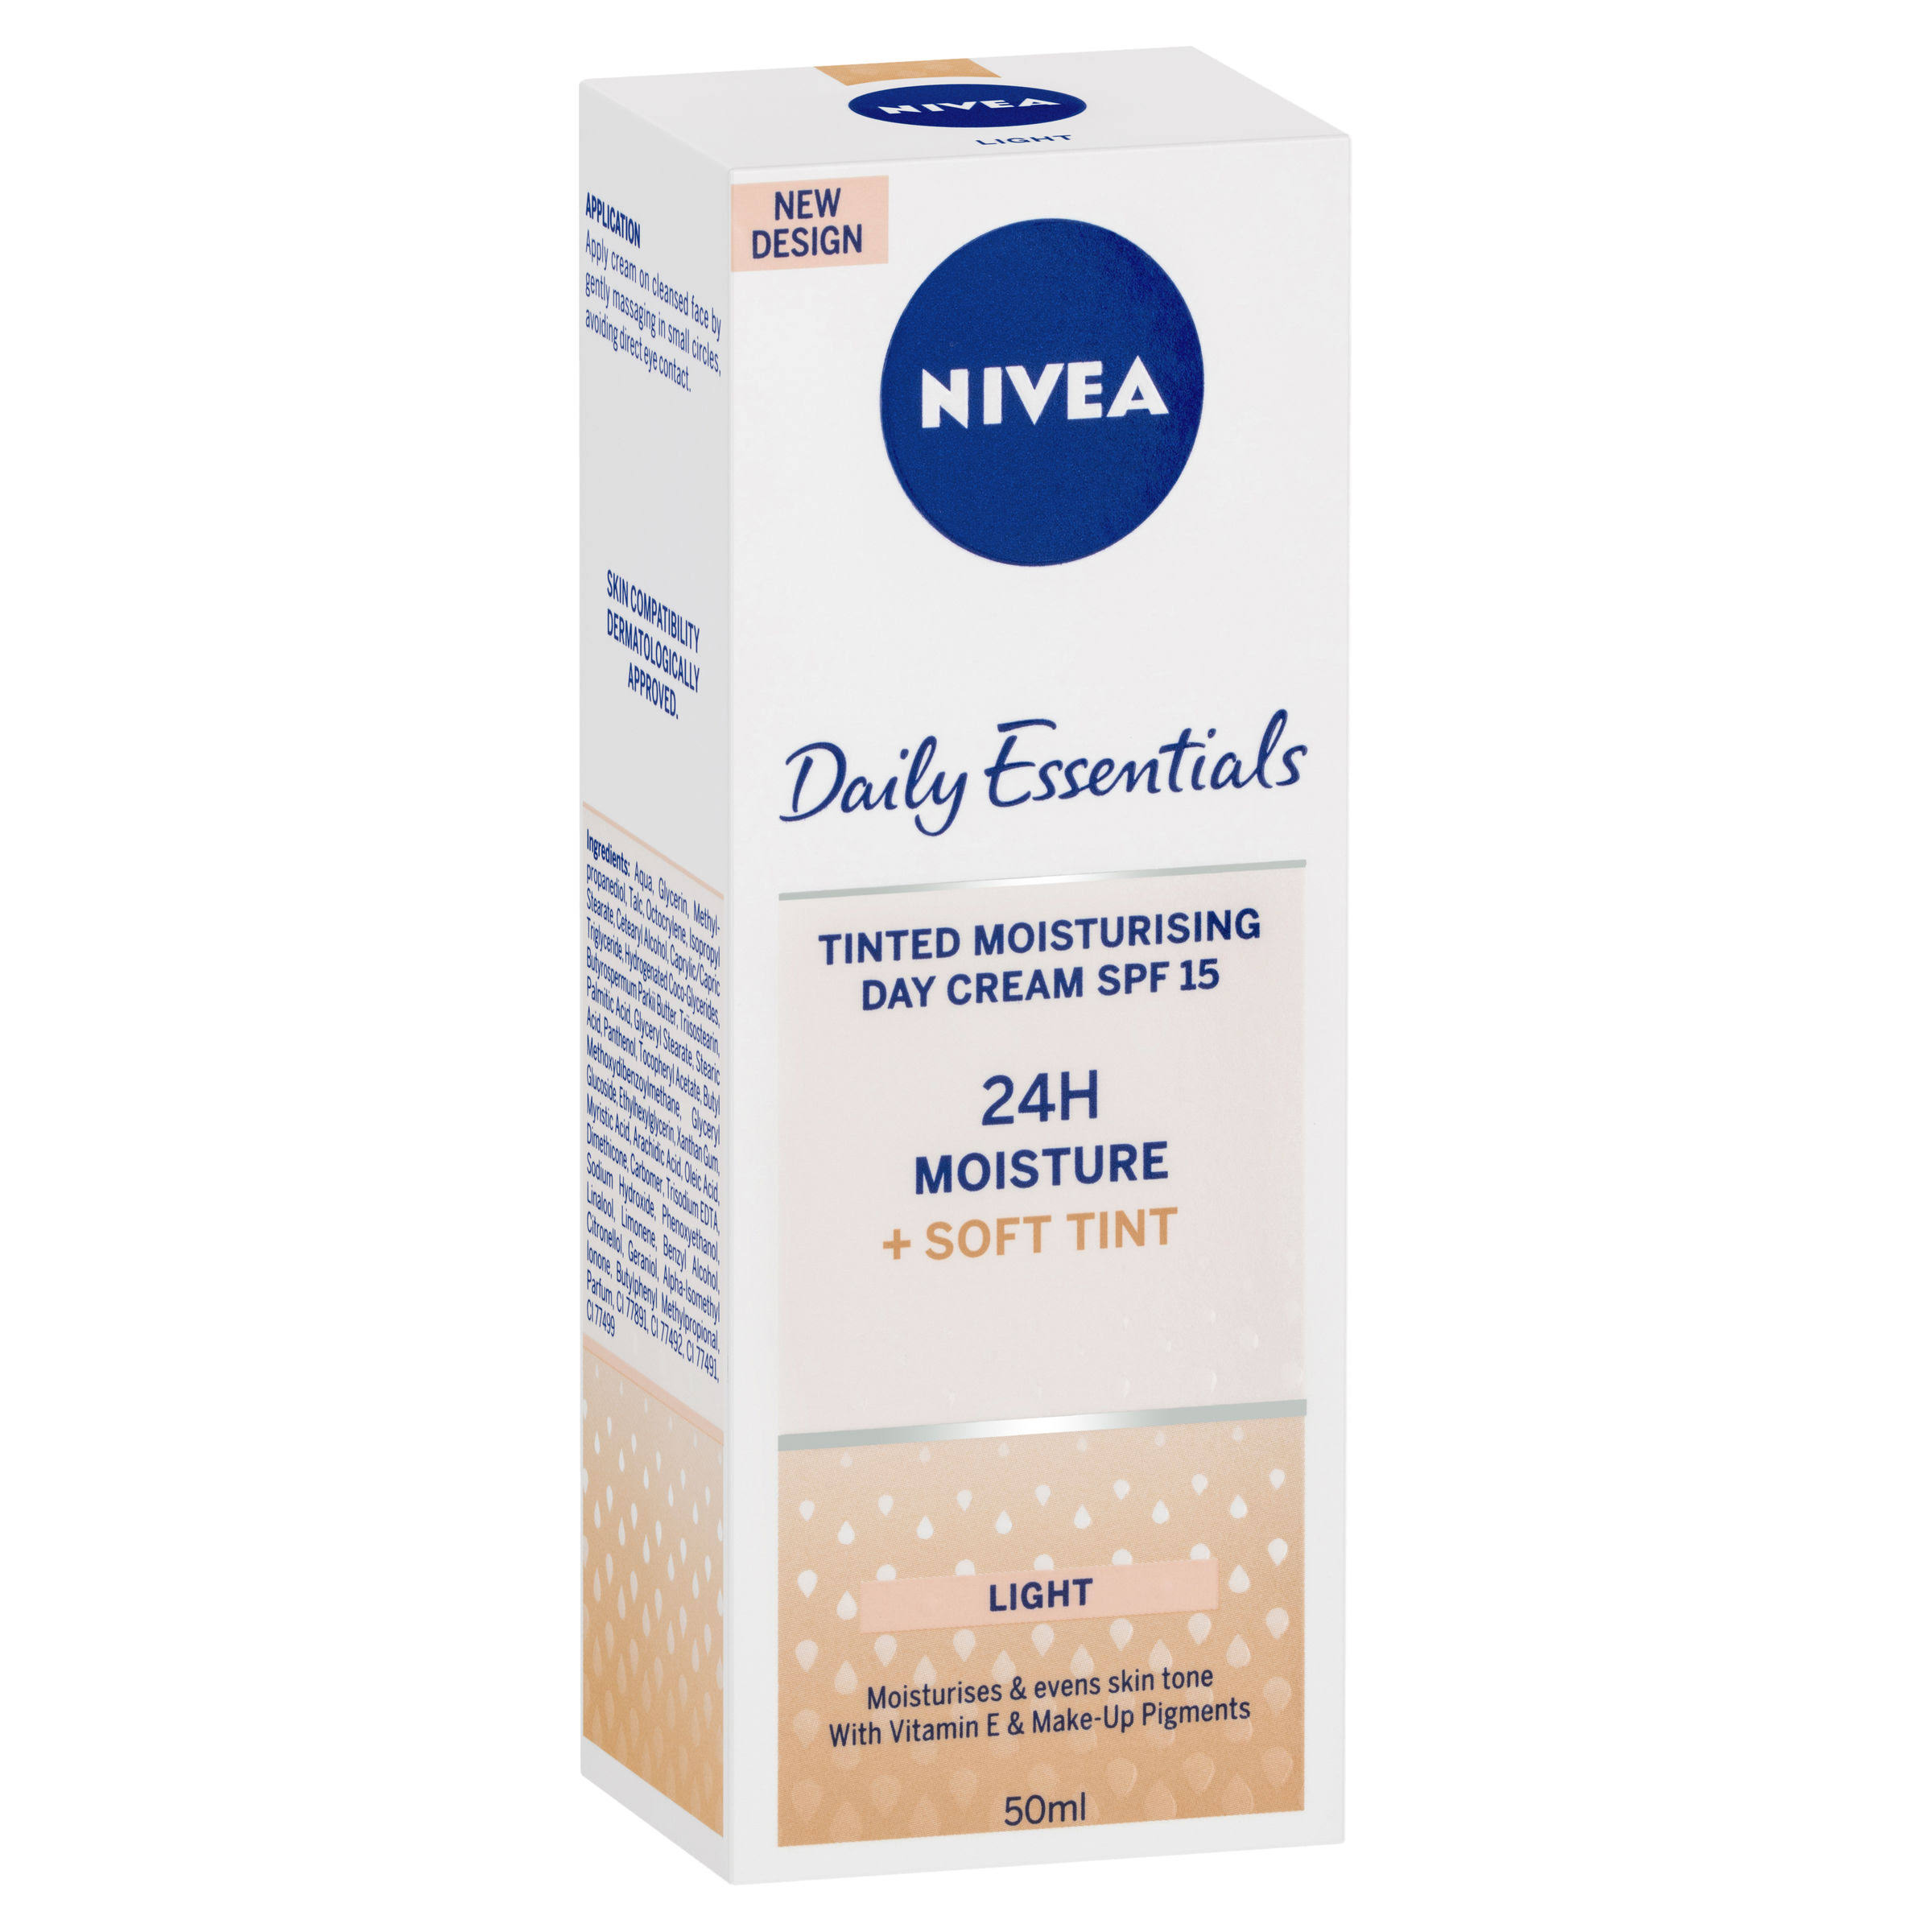 Nivea Daily Essentials Tinted Moisturising Day Cream - 50ml